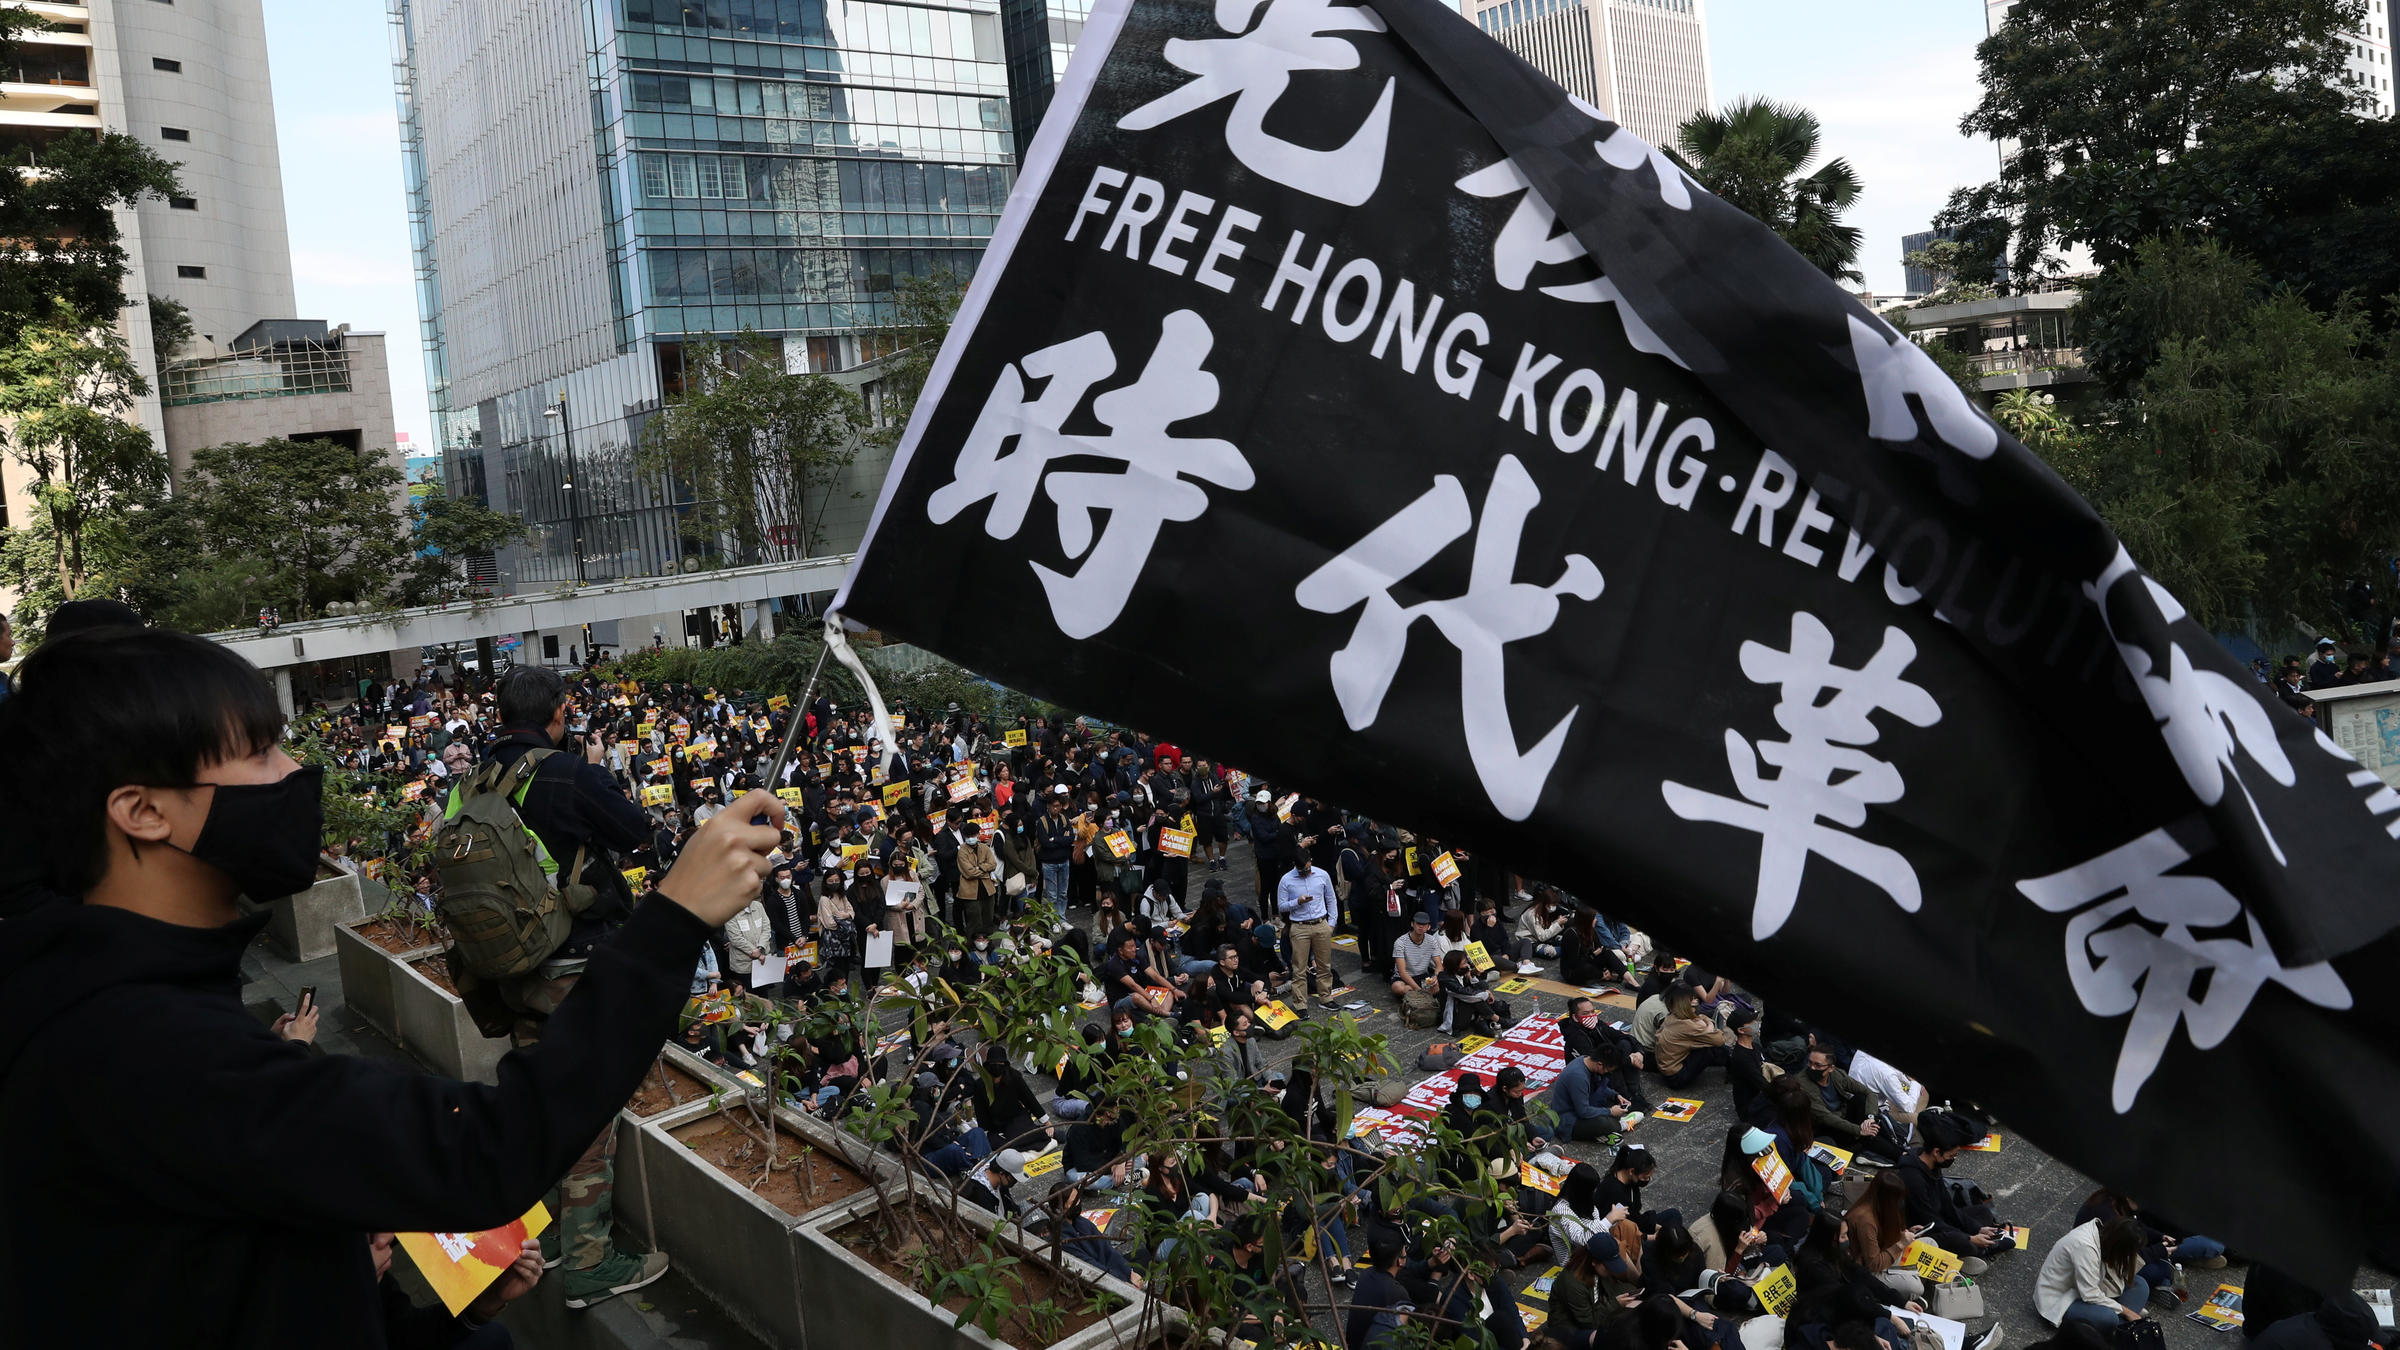 China bans US military visits to Hong Kong in response to Washington's support for protesters зурган илэрцүүд